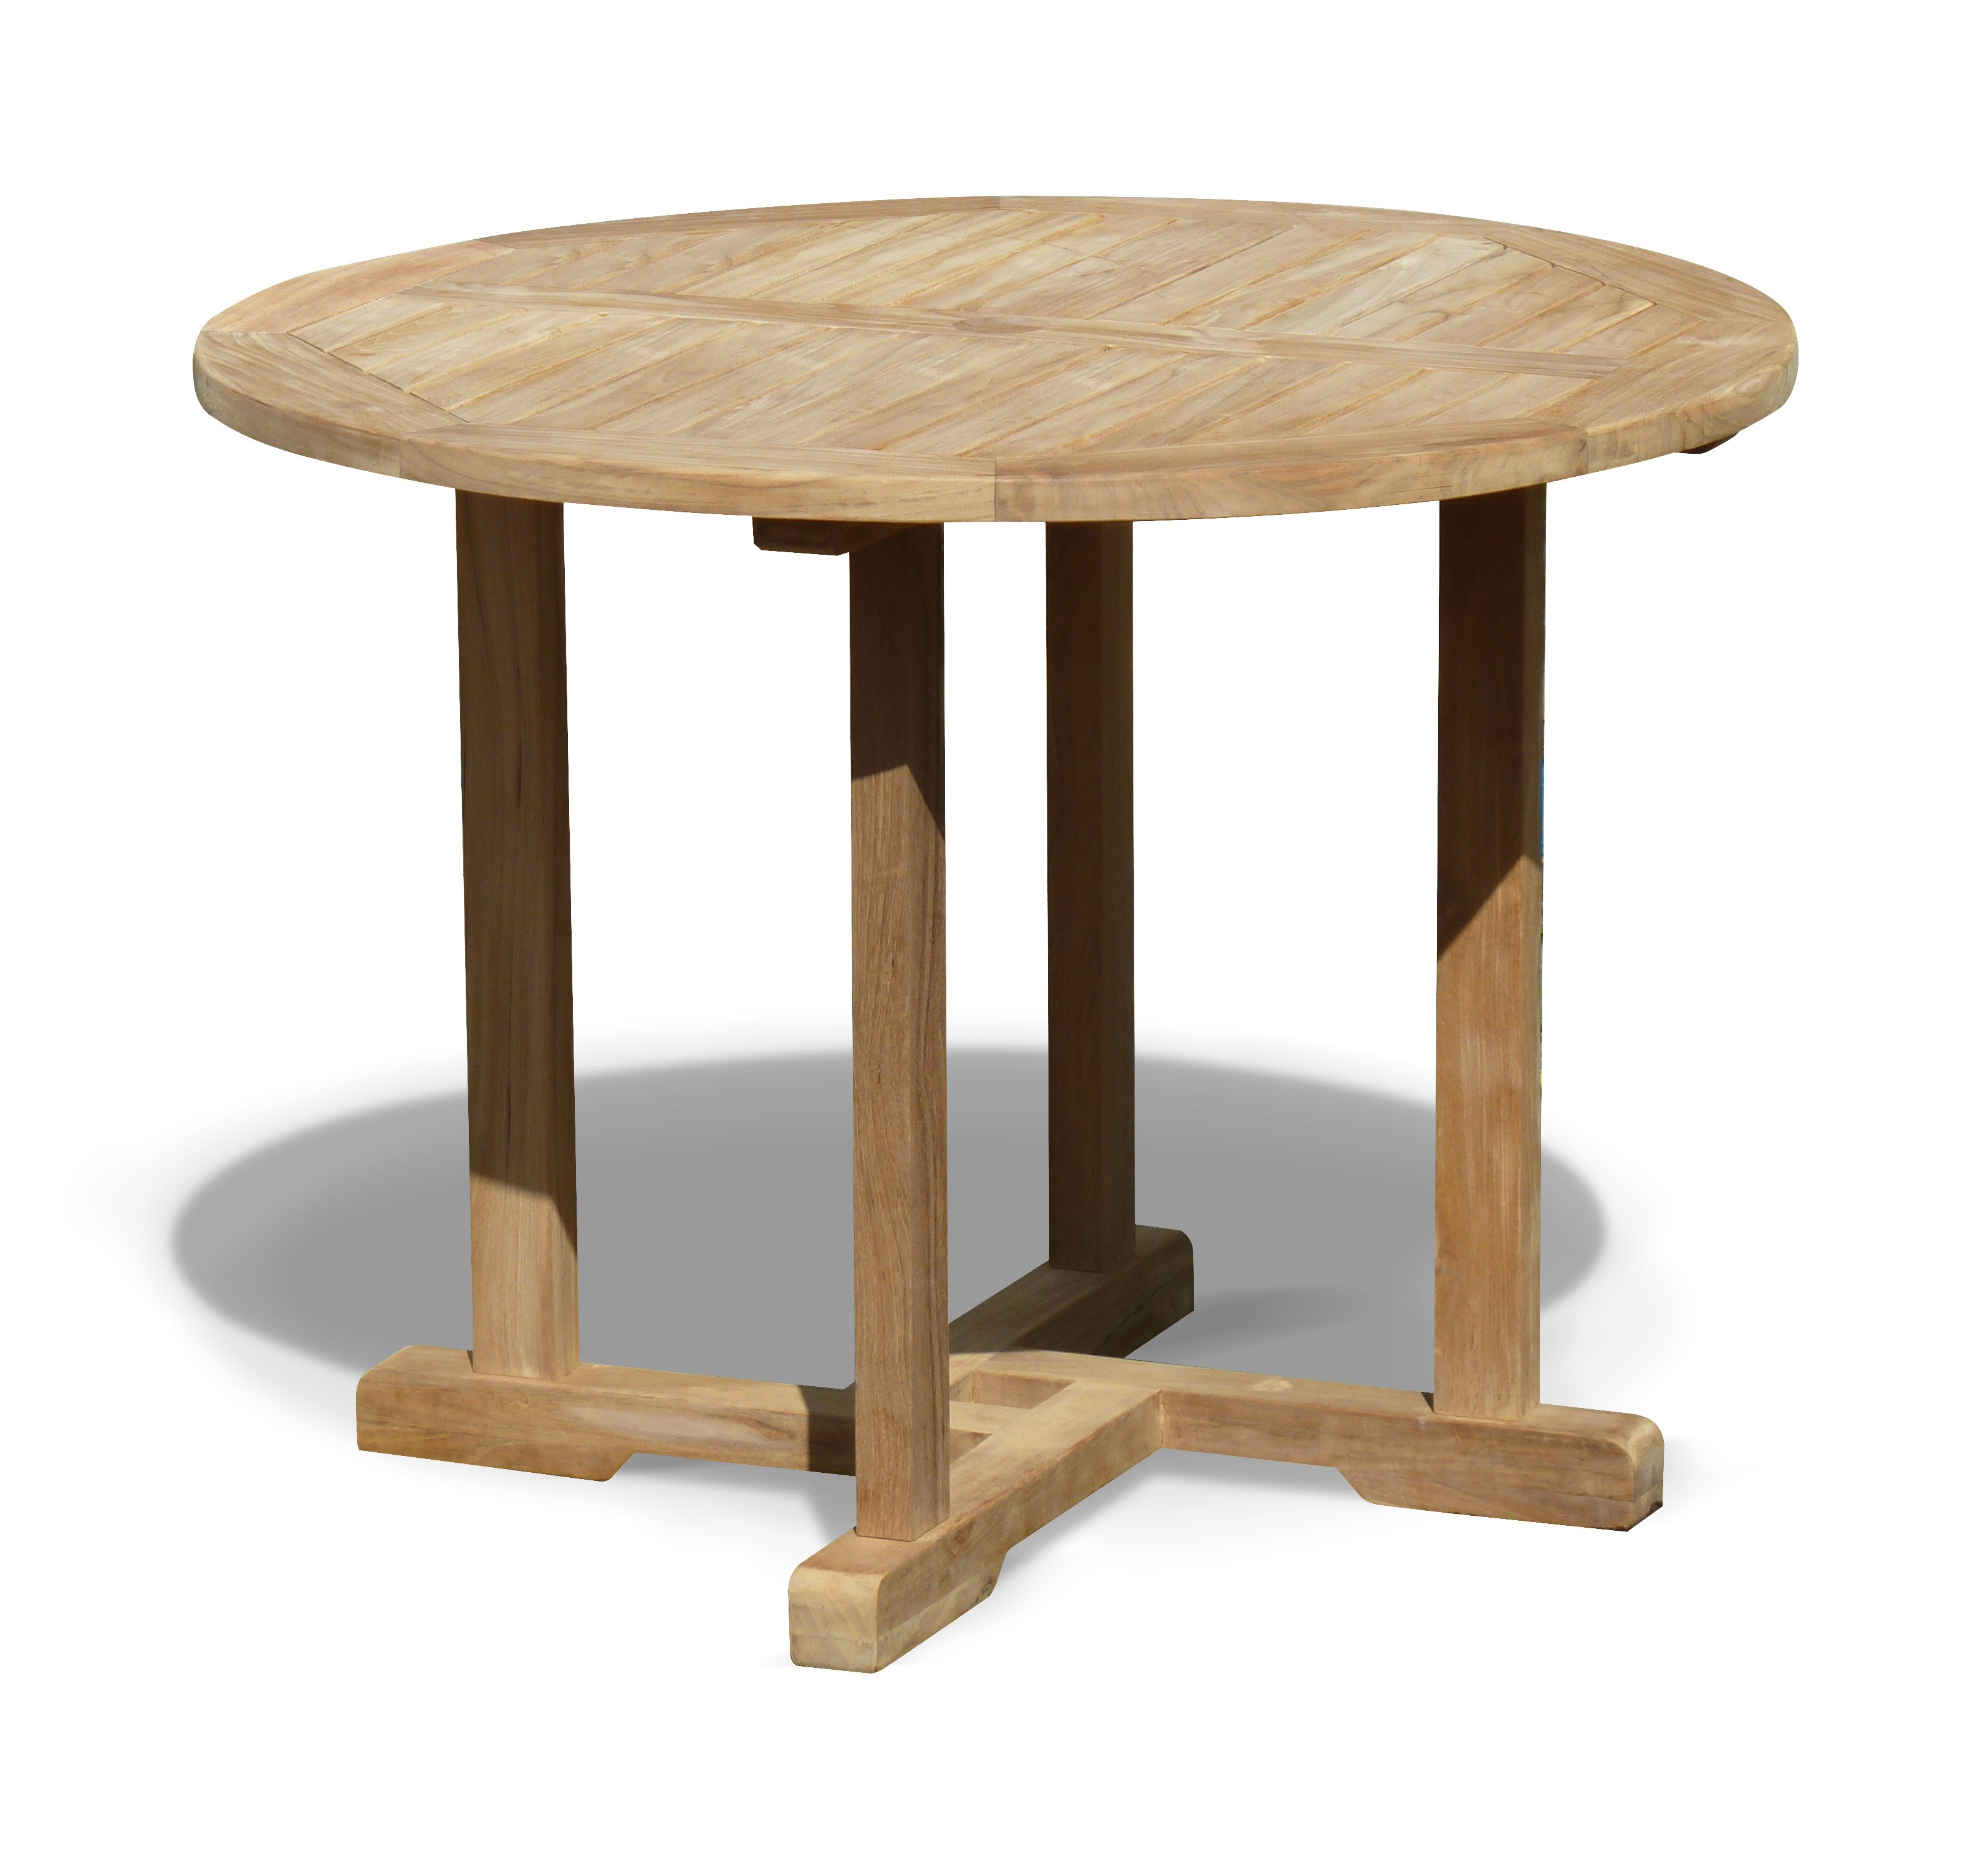 Canfield Teak Round Outdoor Dining Table